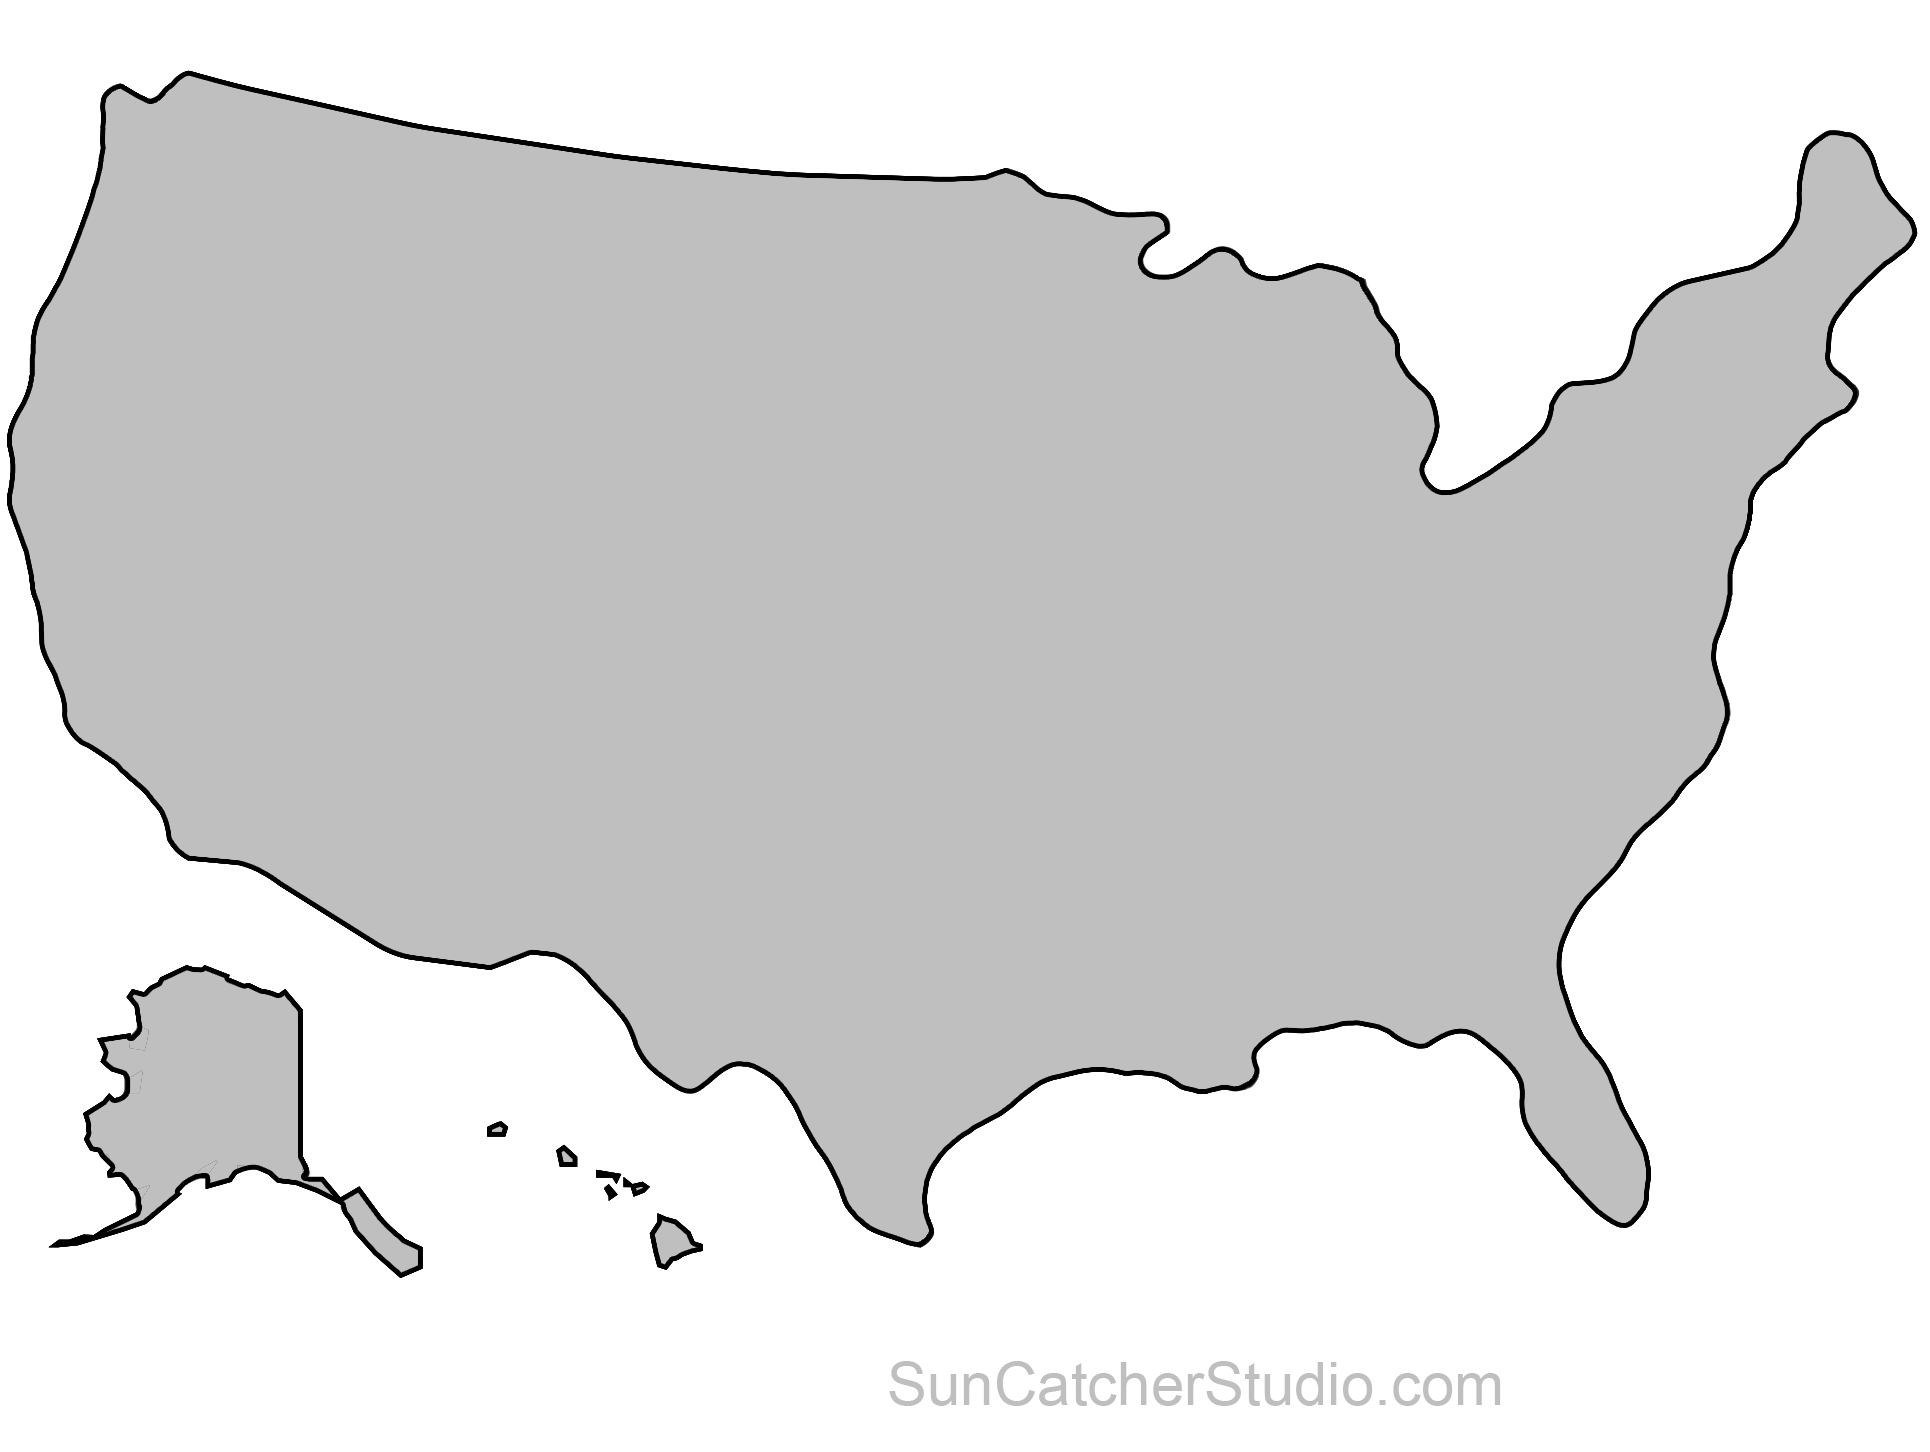 Country clipart state. U s clip art